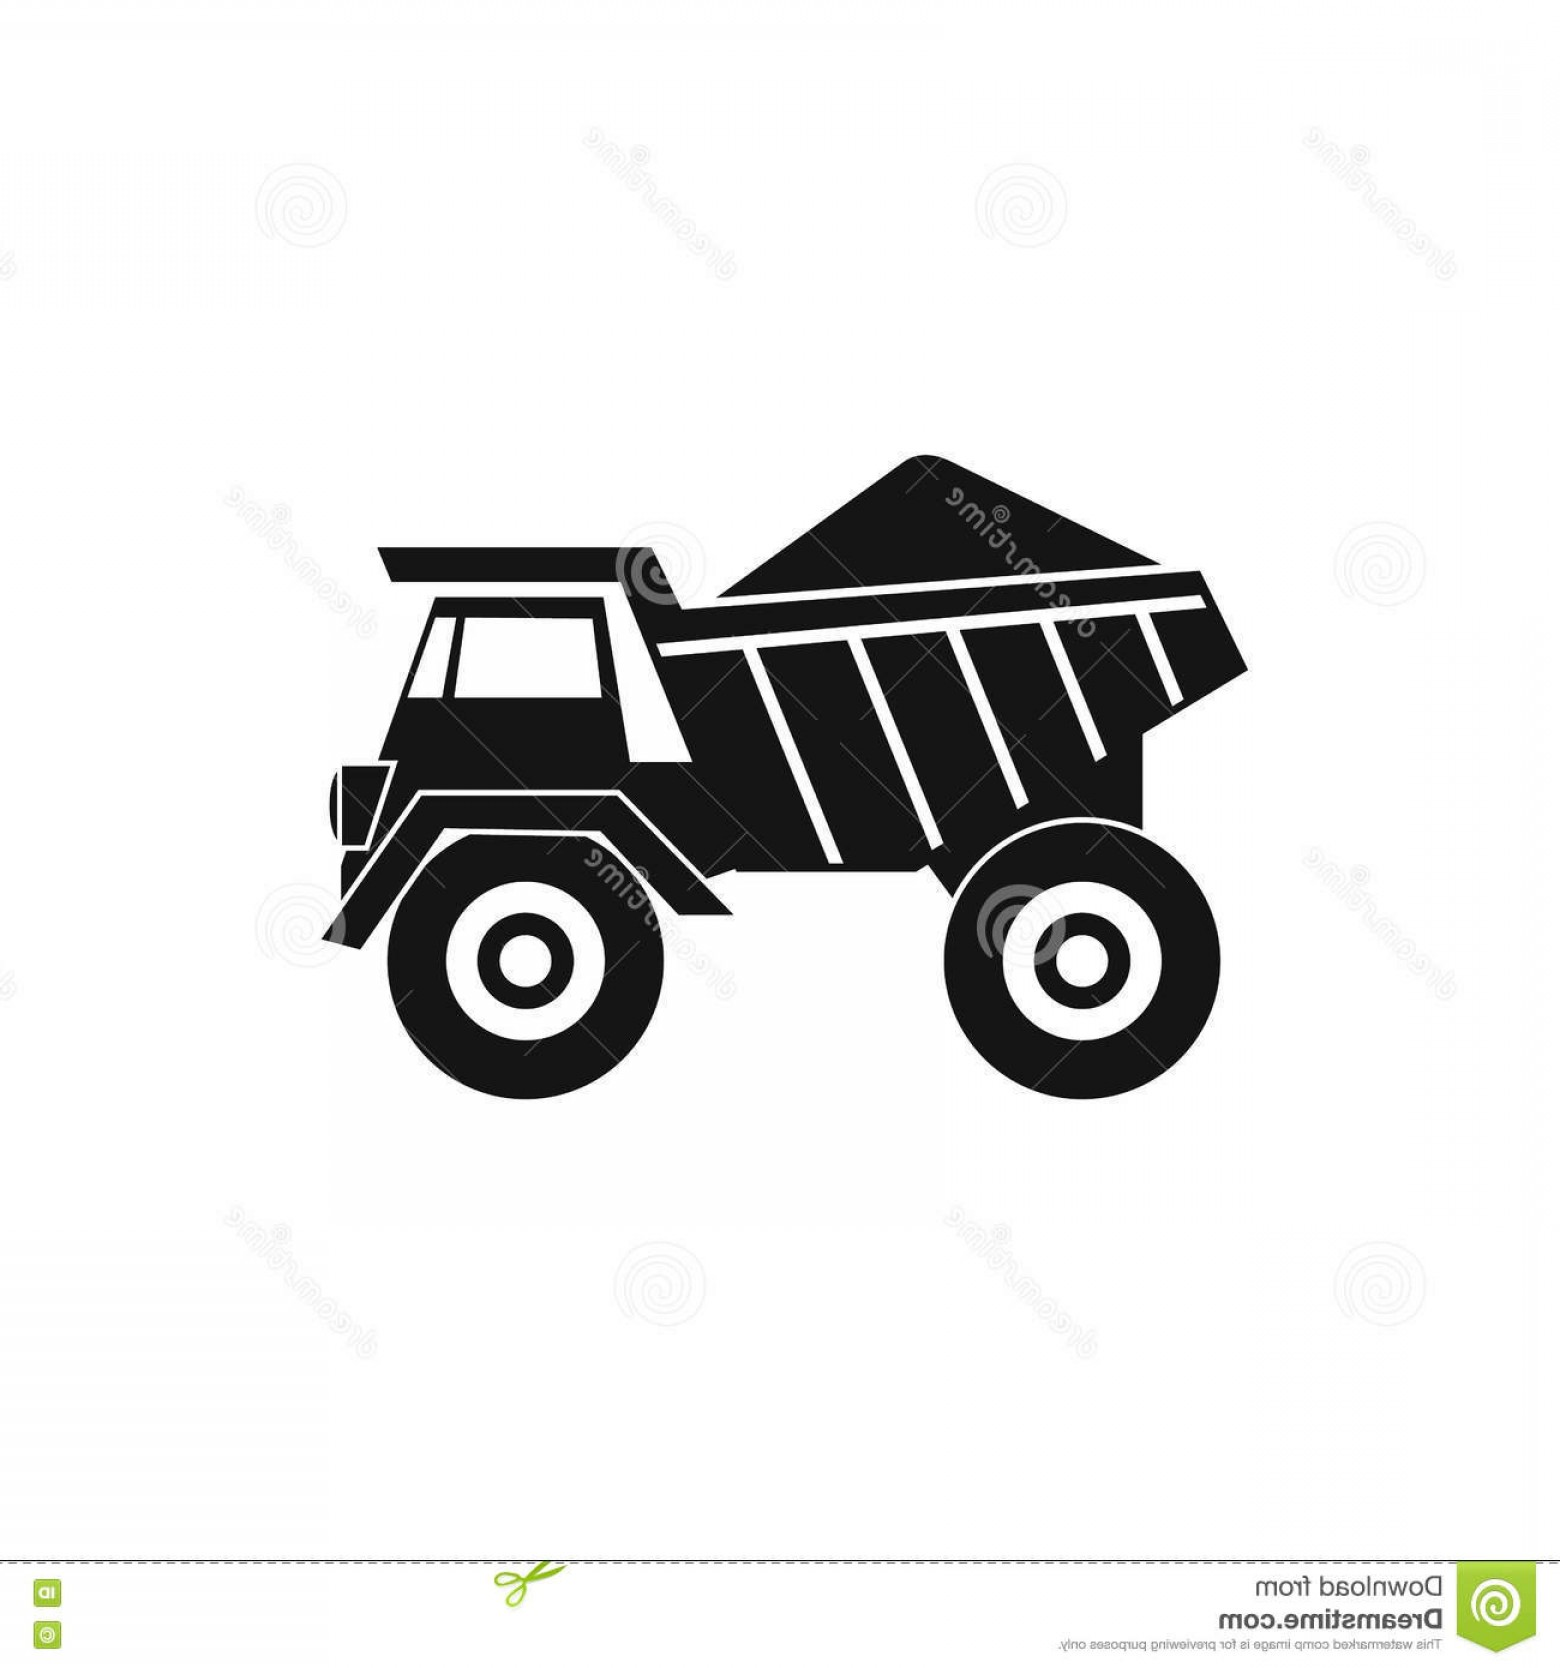 Dump Truck Vector Black And White: Stock Illustration Dump Truck Sand Icon Simple Style Isolated White Background Image